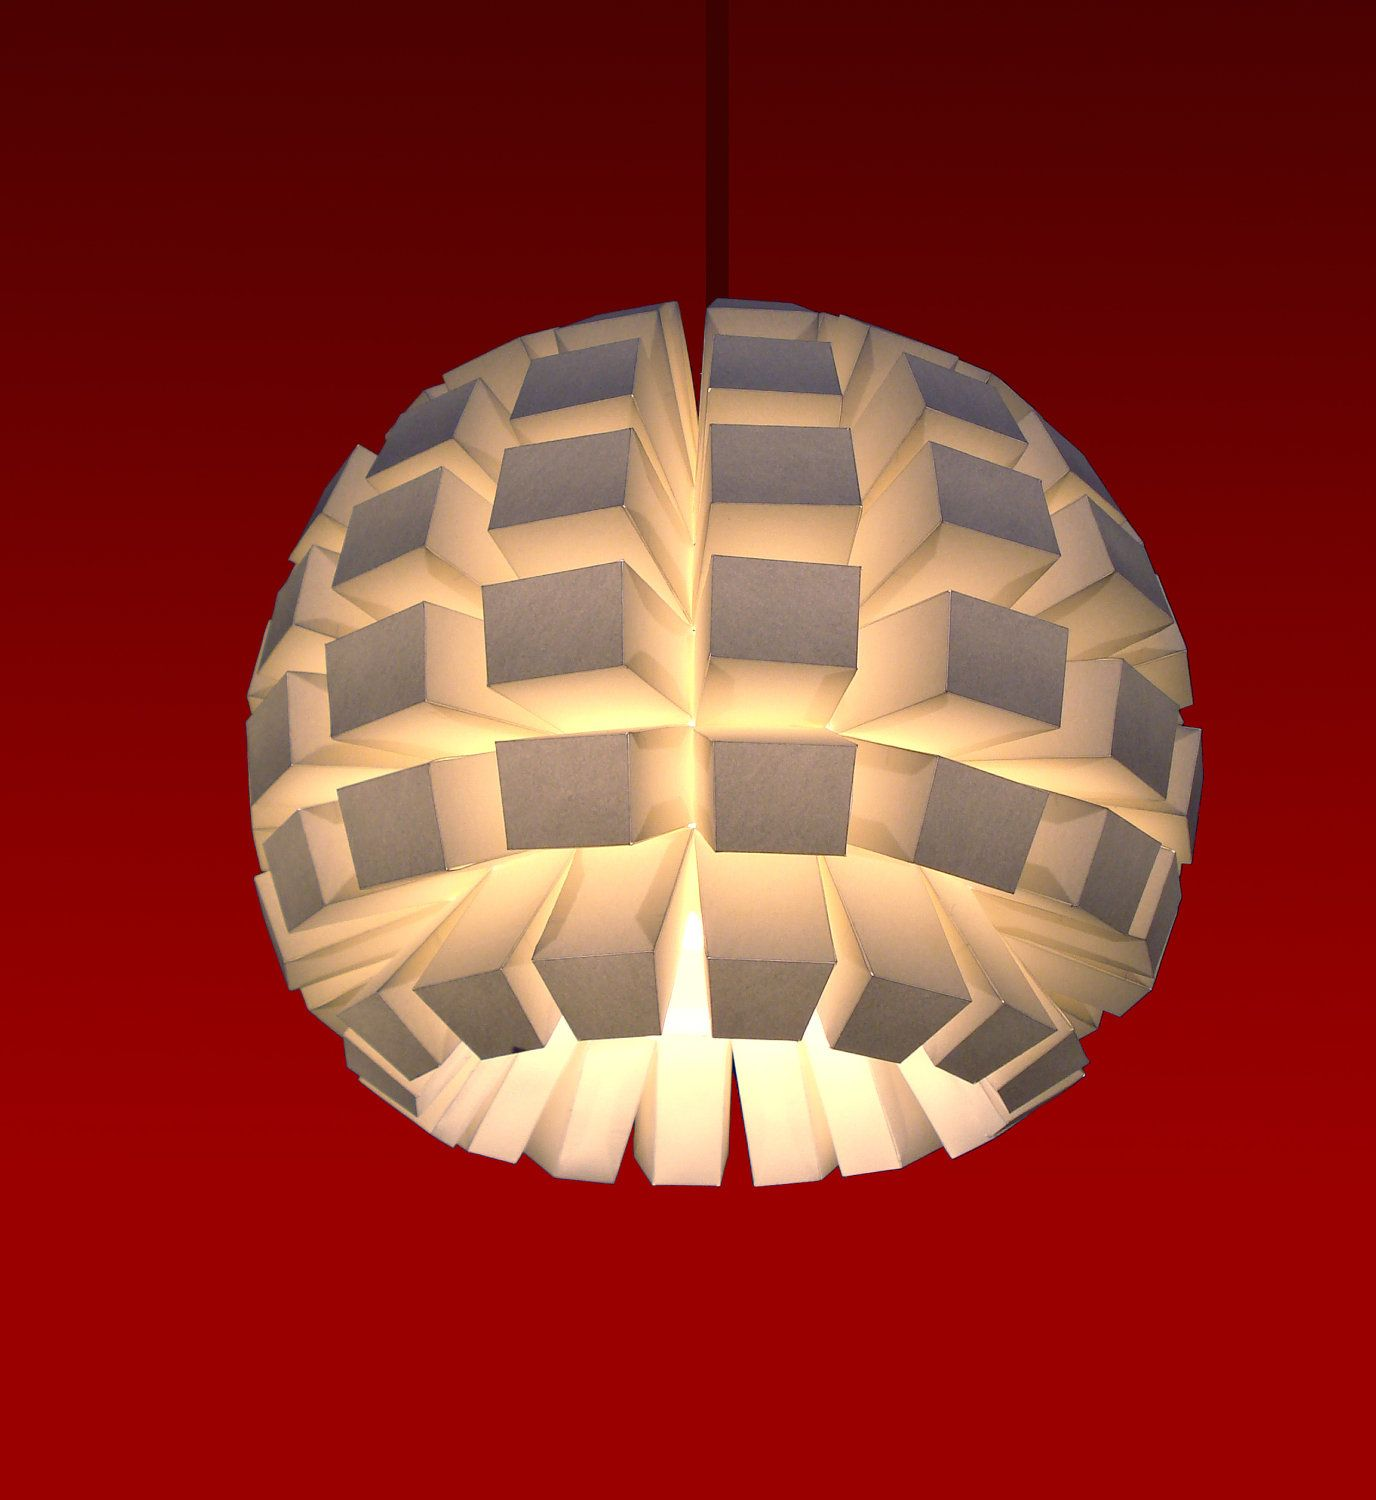 Paper Lightweight Lampshade Paper Lampshade Contemporary Lamp Shades Lamp Inspiration